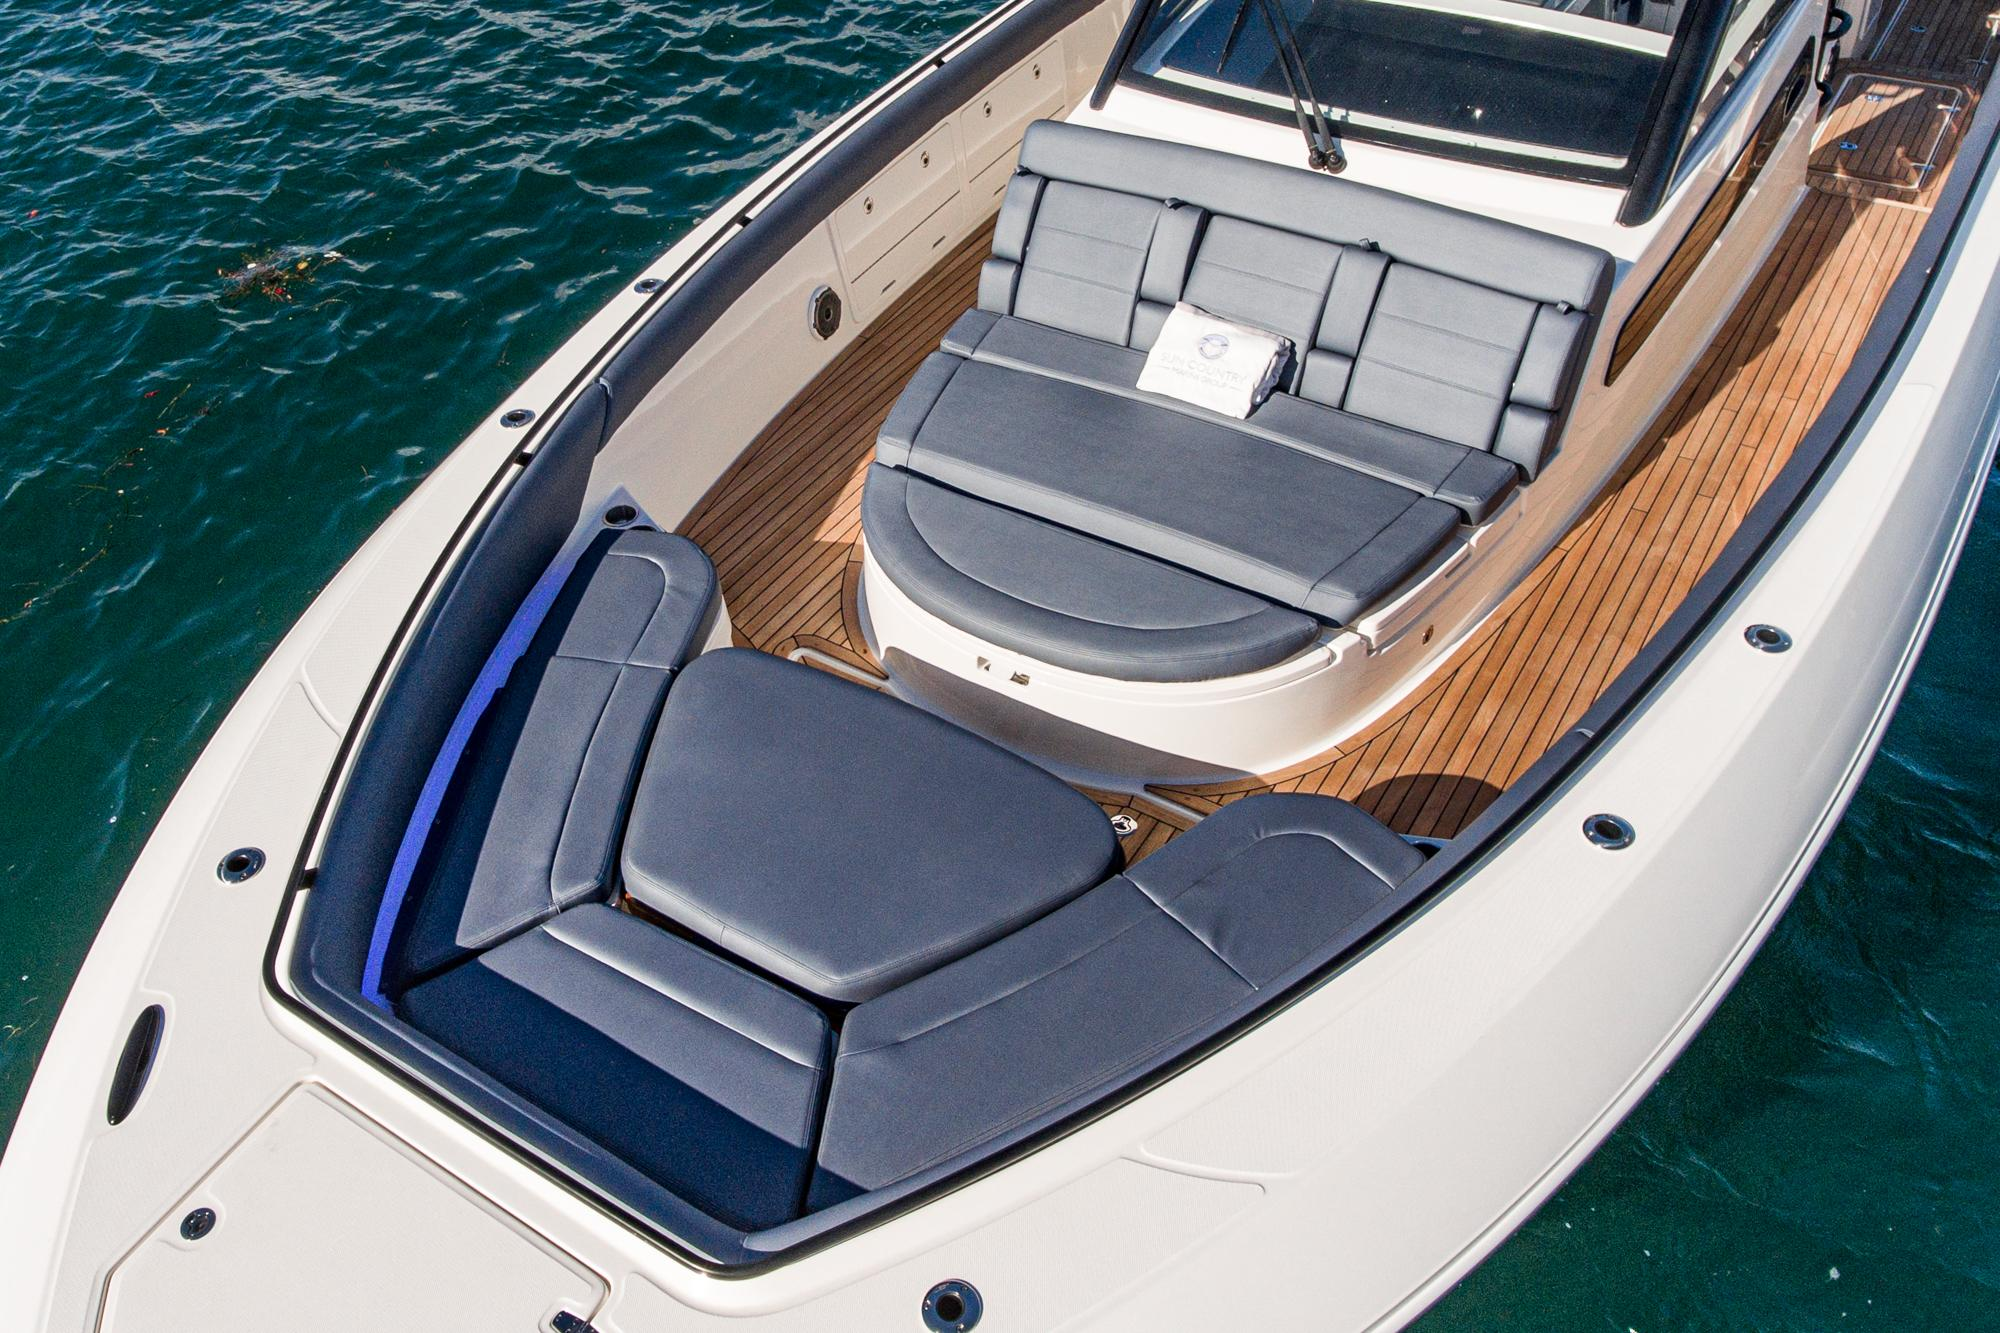 2021 Boston Whaler 420 Outrage #BW0381G inventory image at Sun Country Coastal in Newport Beach